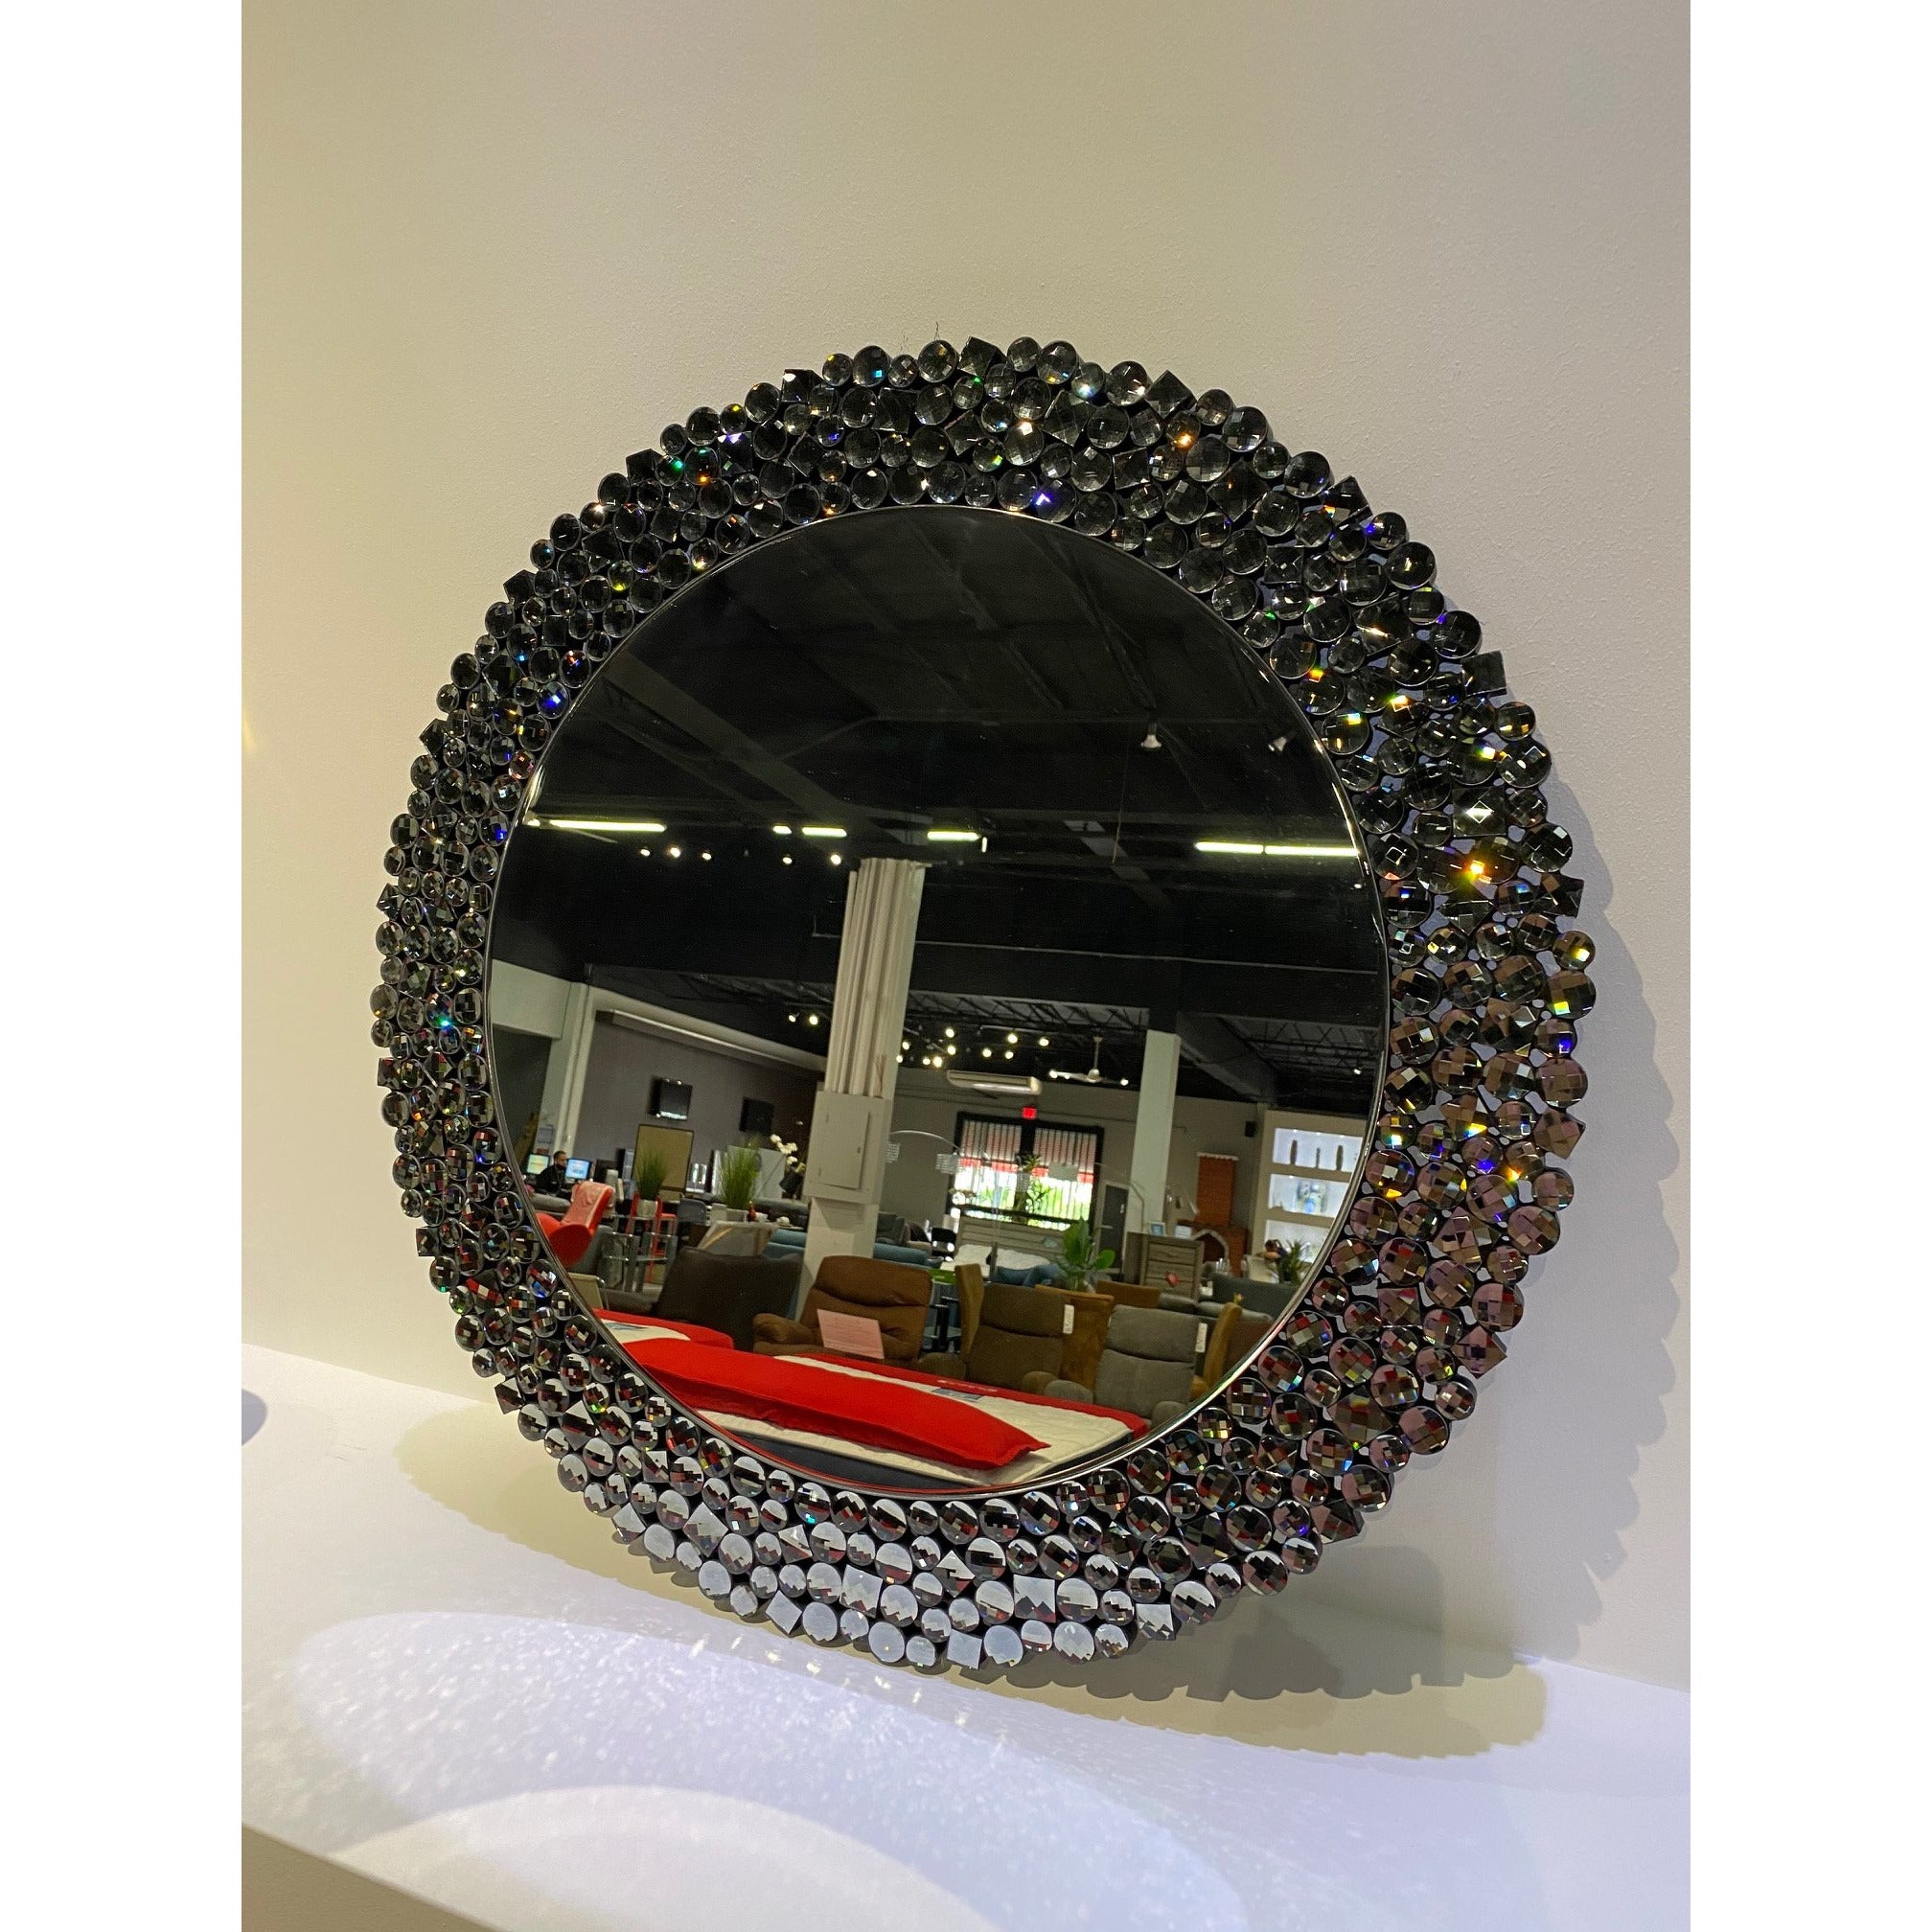 Decorative Circular Mirror - Casa Muebles